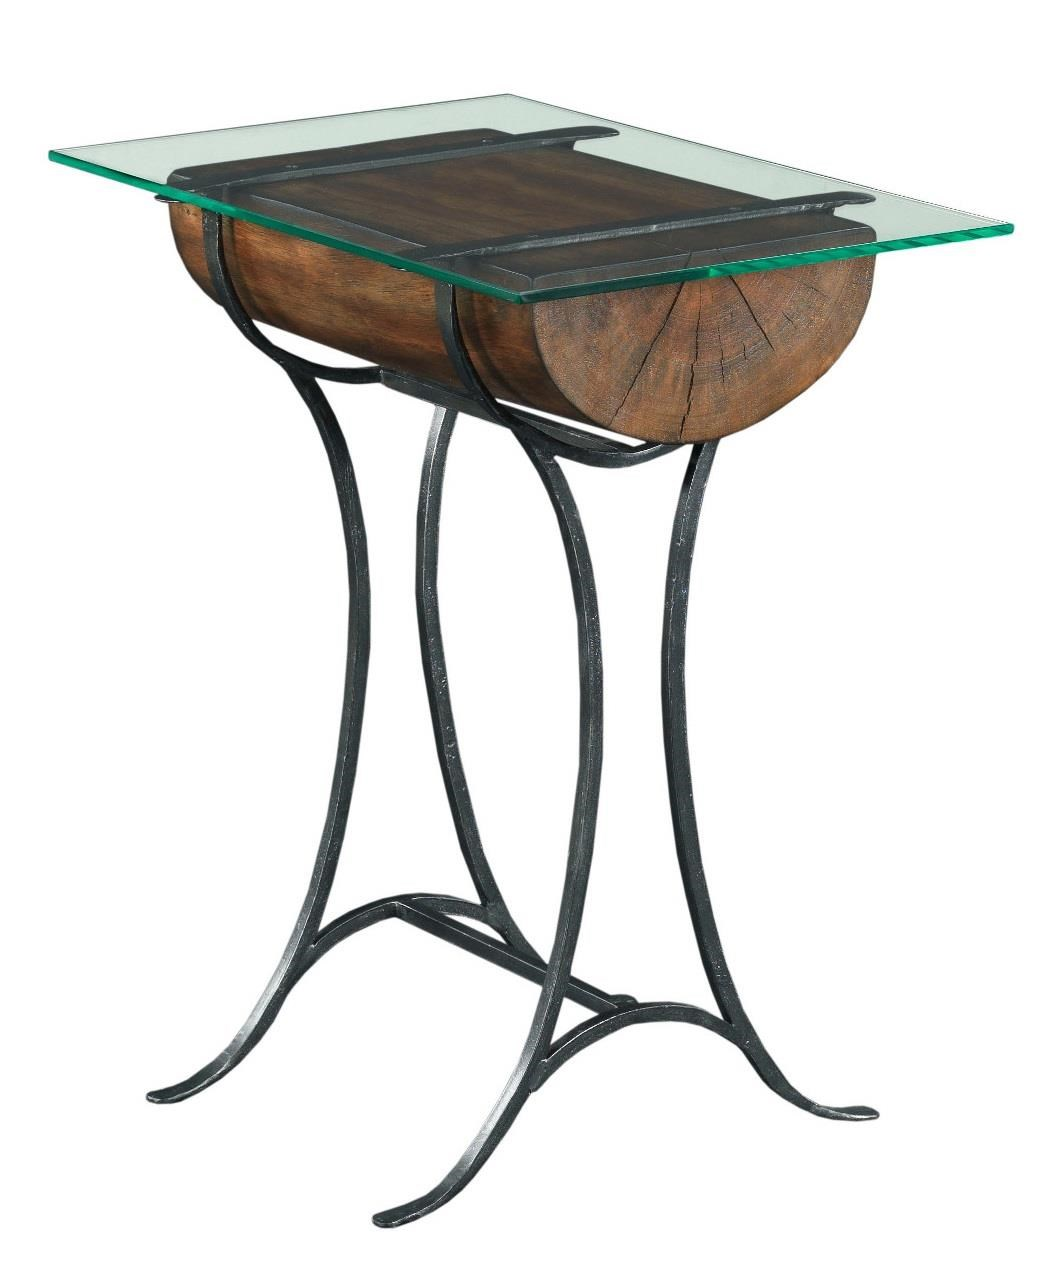 Kincaid Furniture Modern Classics Occasional Tables Rustic Log Chairside  Table With Tempered Glass Top   Becker Furniture World   End Table